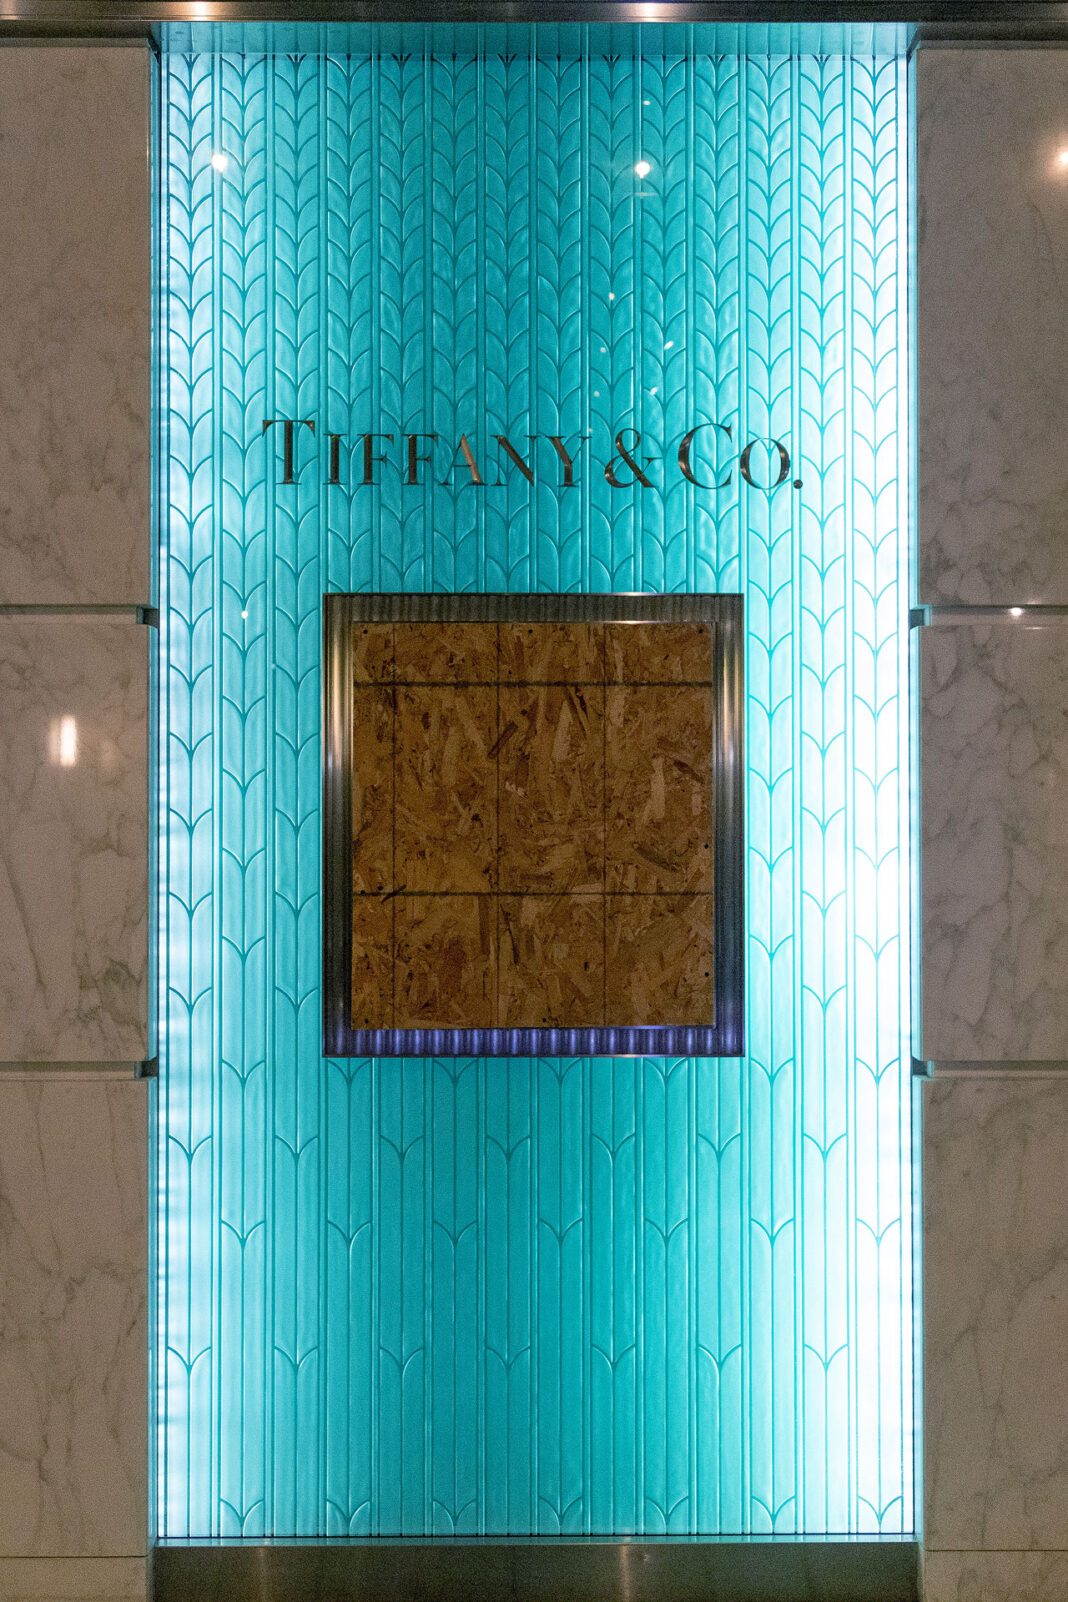 Plywood covers Tiffany and Co. window